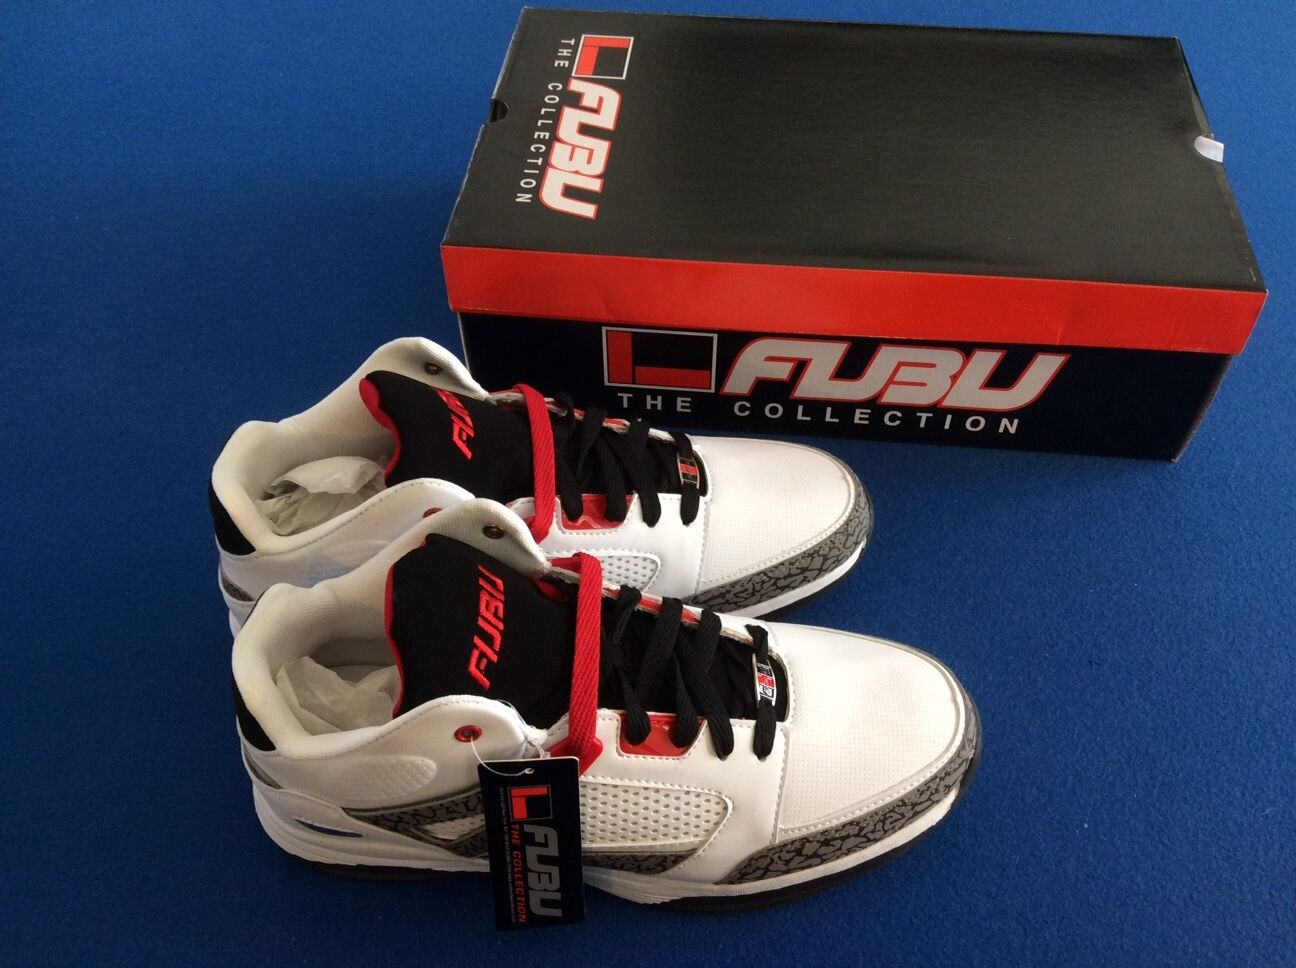 89d870910440 FUBU Athletic Reed 3 Basketball Shoes Mid Cut SNEAKERS Sz 12 White GreyRed  Black